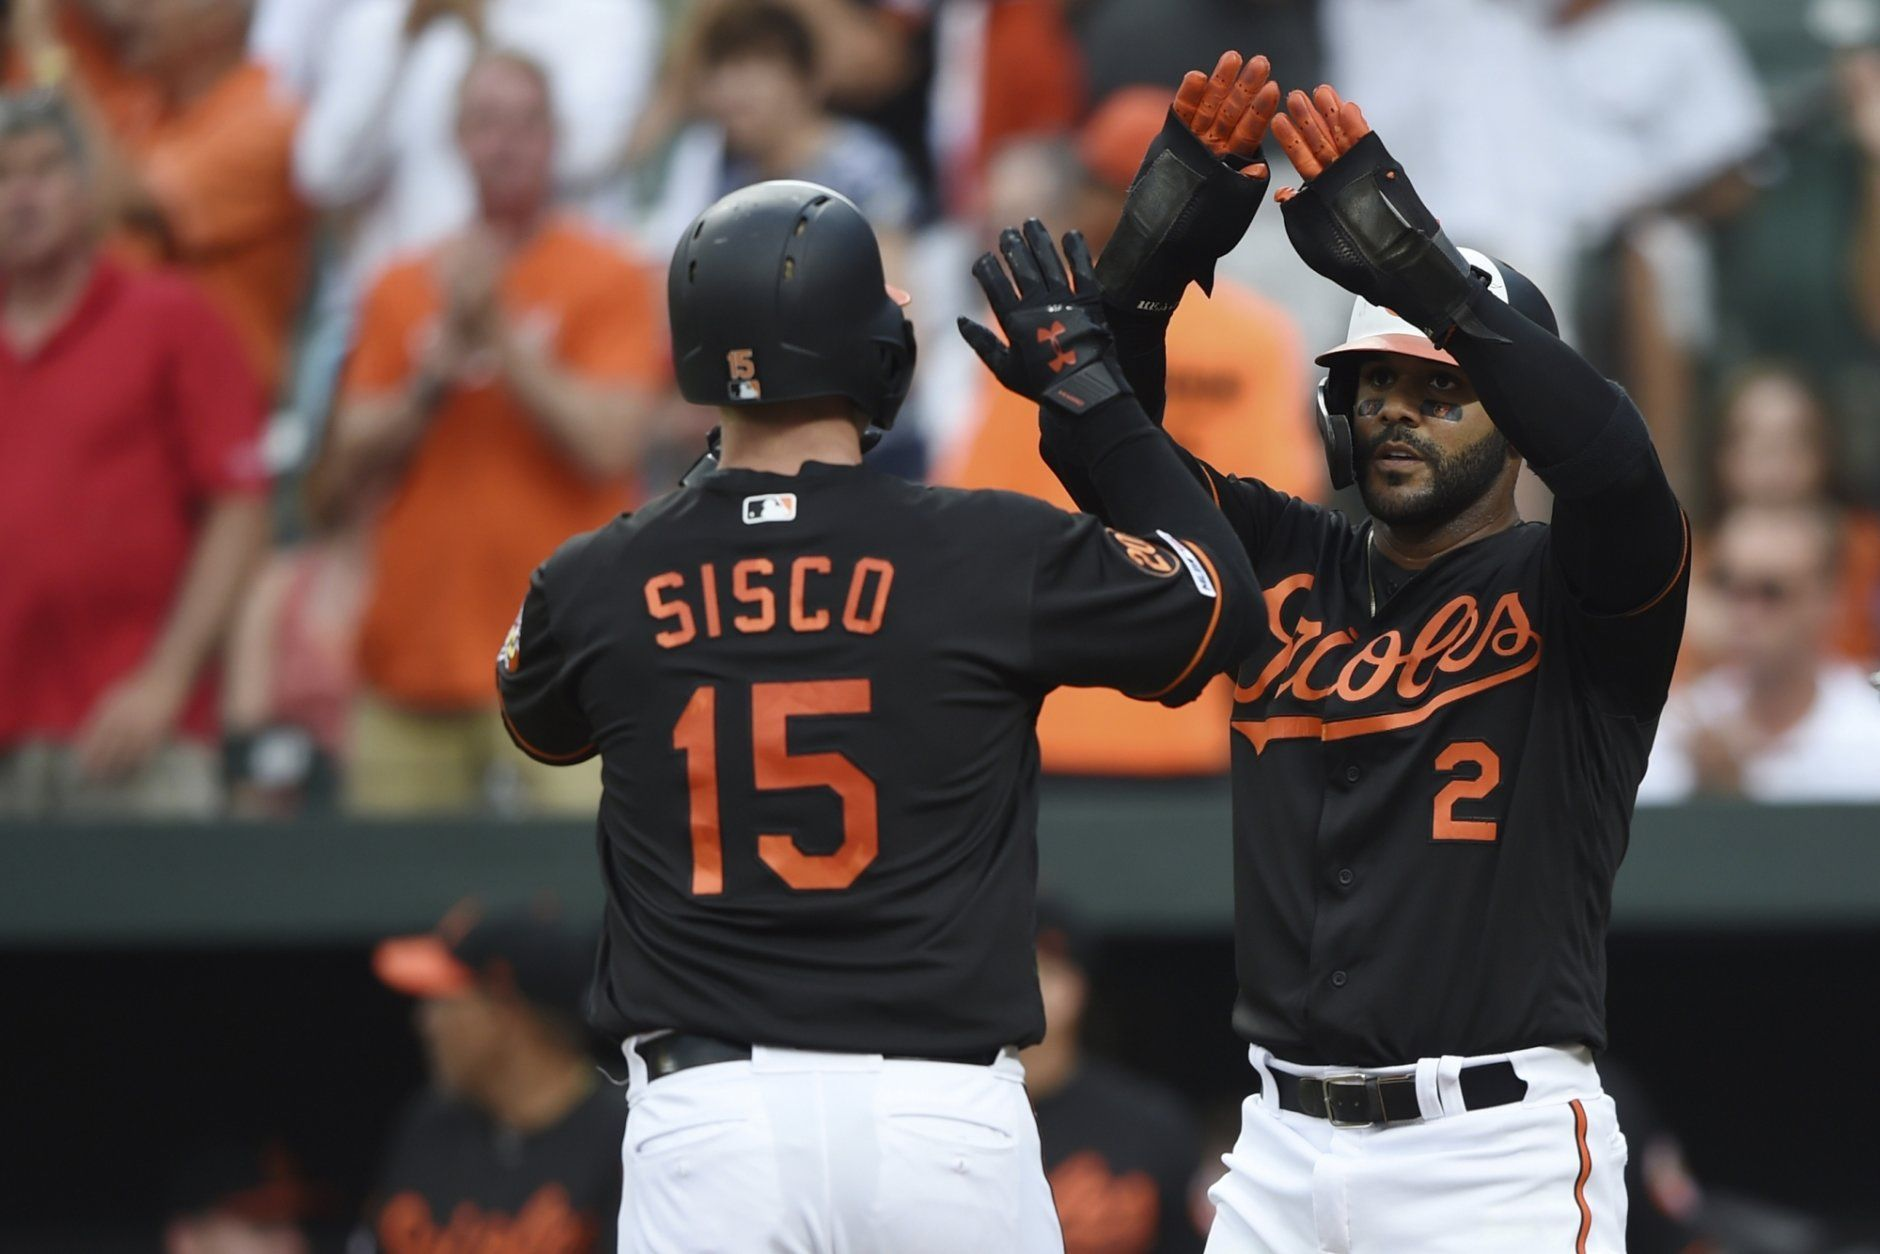 Sisco, Orioles rough up Clevinger in 13-0 rout of Indians | WTOP